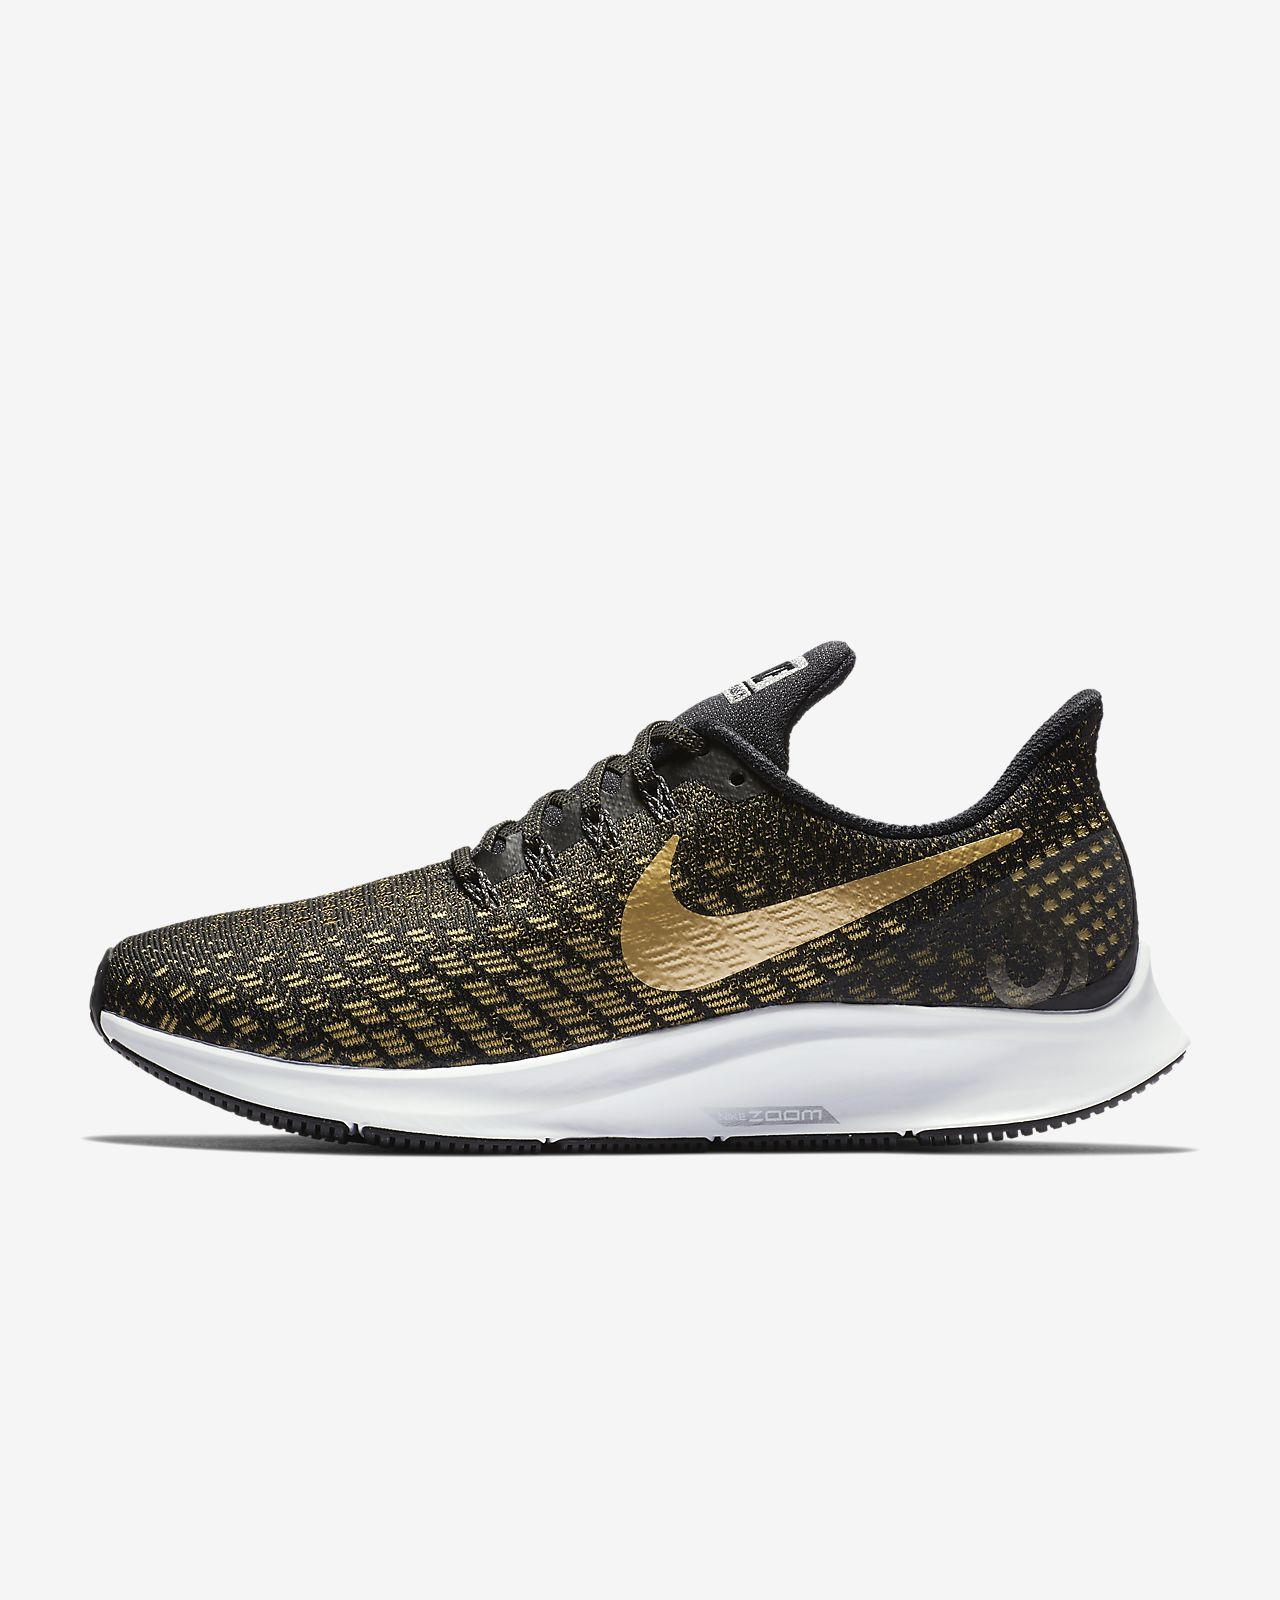 new styles 9f841 3abff ... Nike Air Zoom Pegasus 35 Metallic Women s Running Shoe